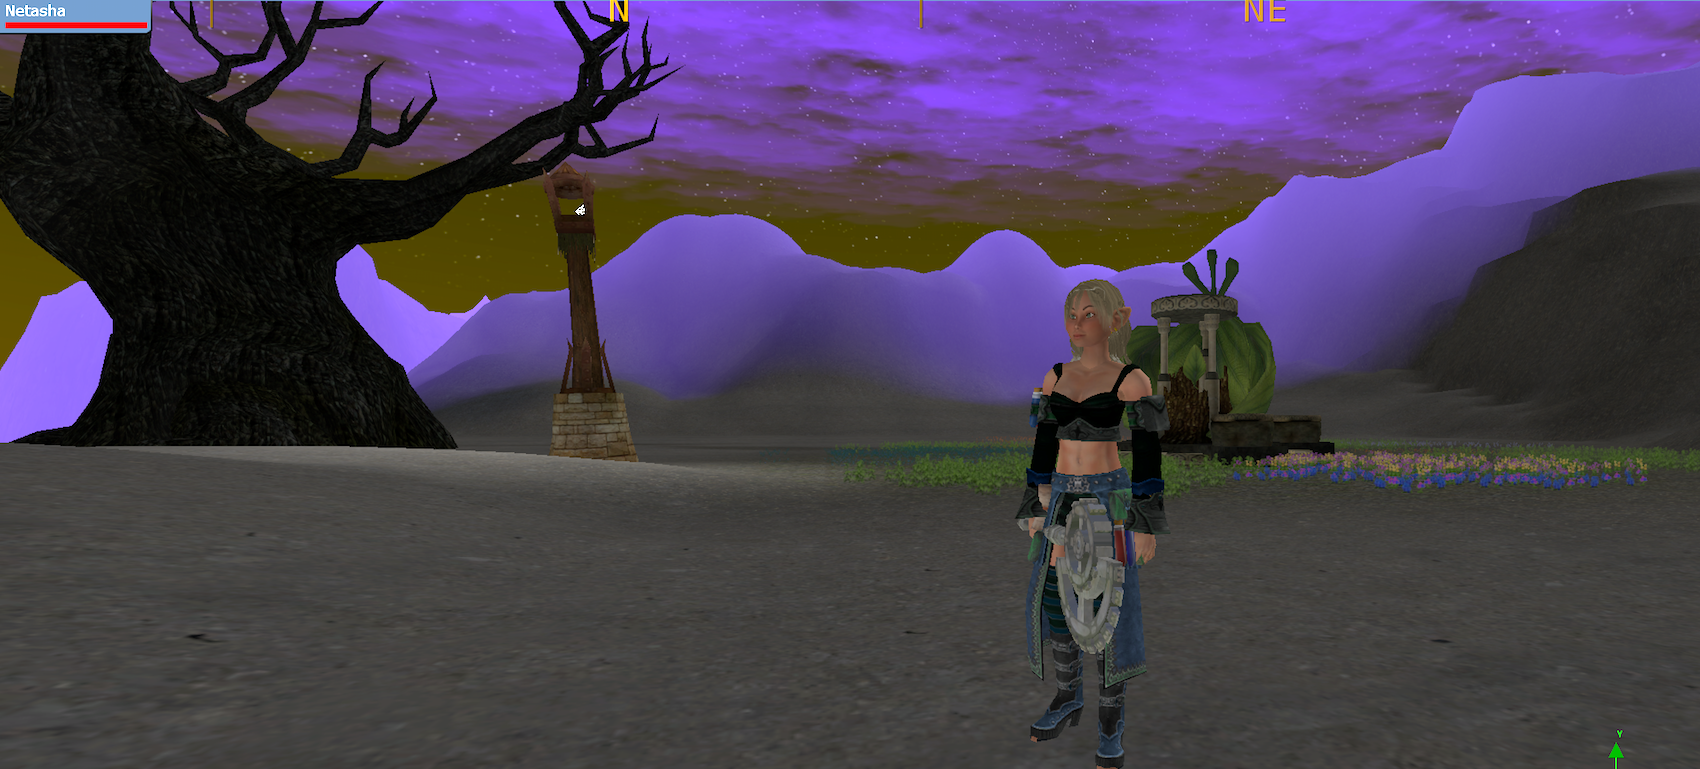 Netasha at the shrine with its fowers surrounded by lifeless Shadow Lands.